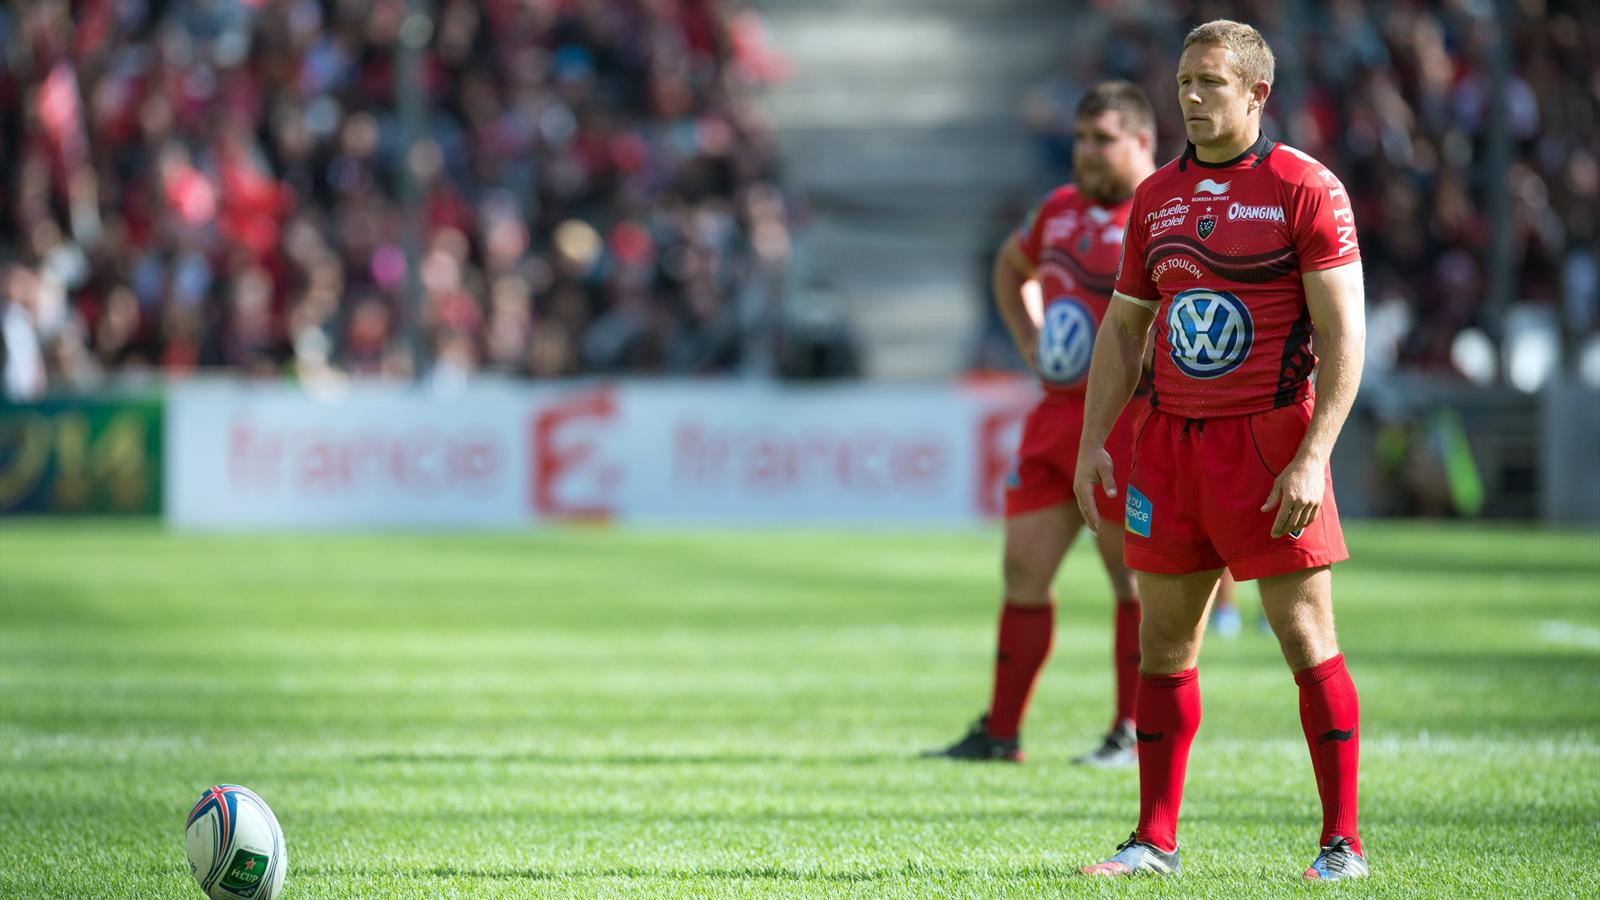 Jonny Wilkinson - Toulon Munster - 27 avril 2014